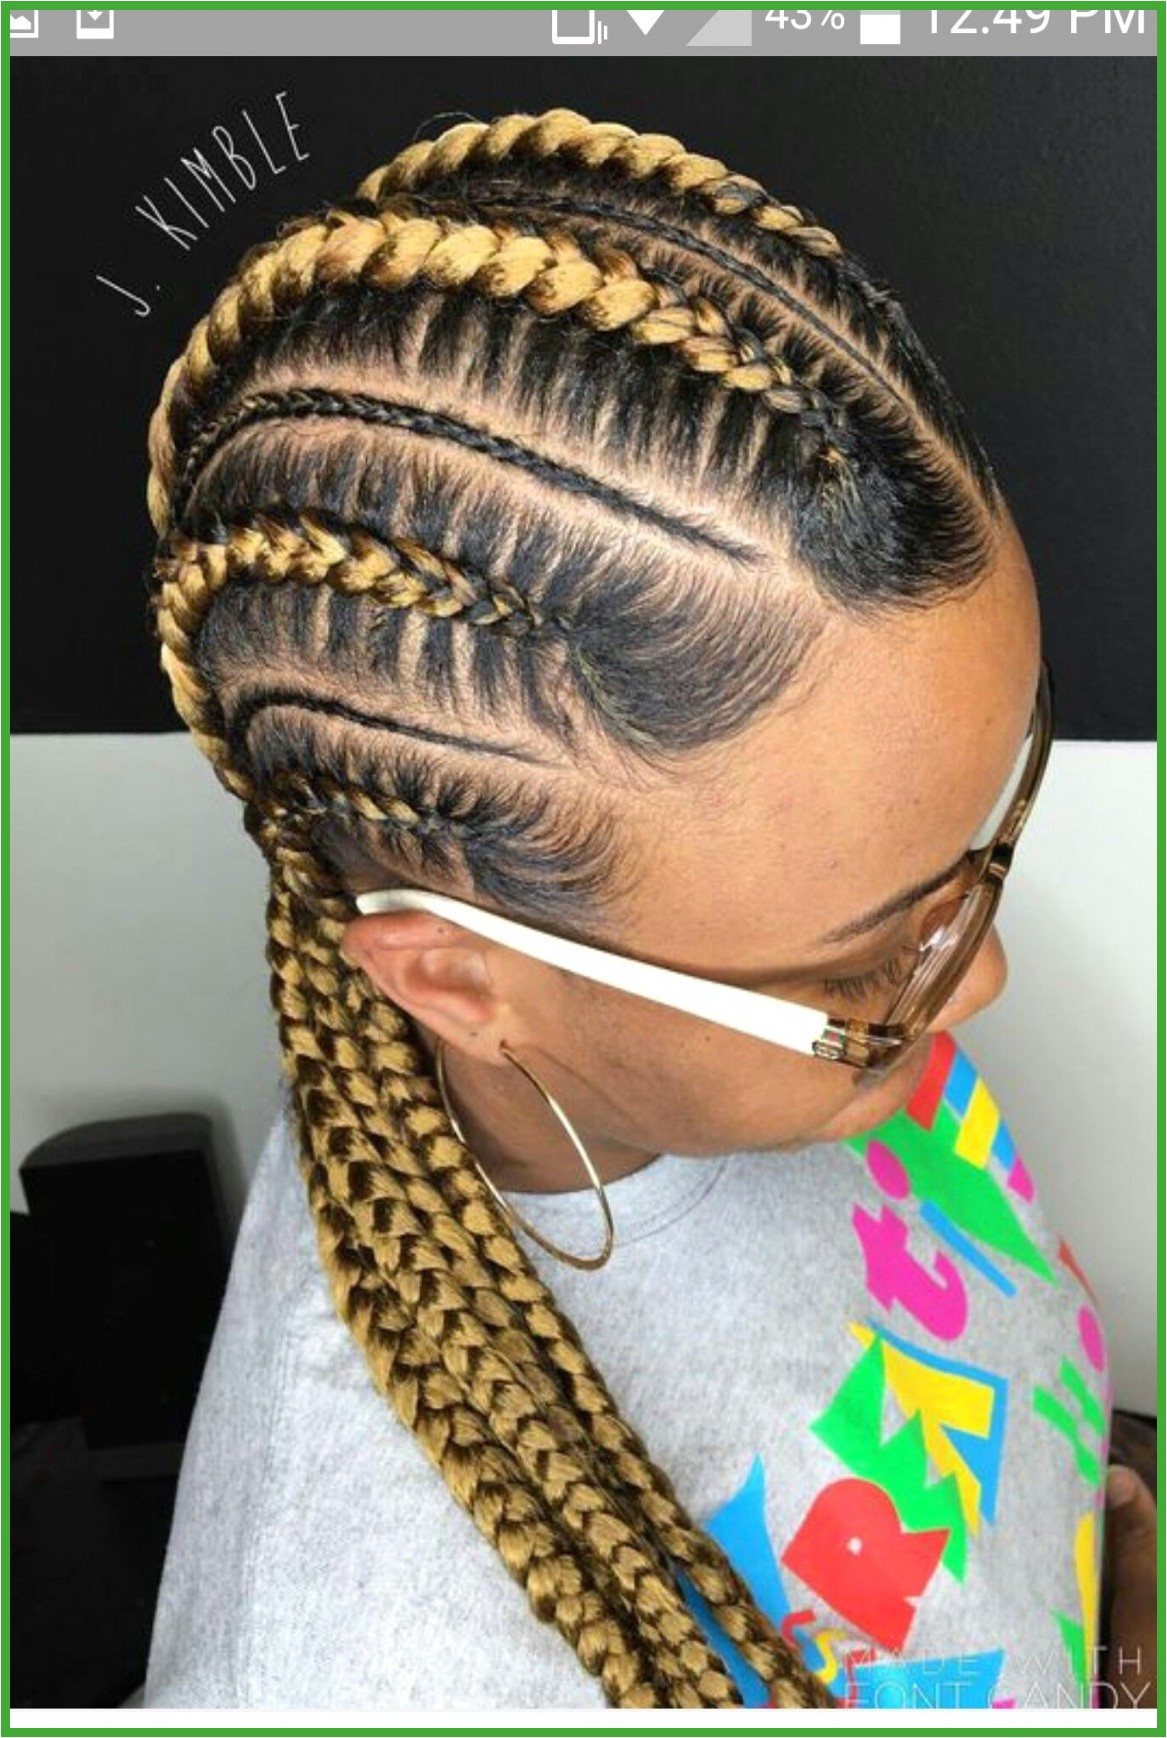 Braid Hairstyles Lovely Braid Hairstyles New Big Braids Hairstyles Fresh Micro Hairstyles 0d